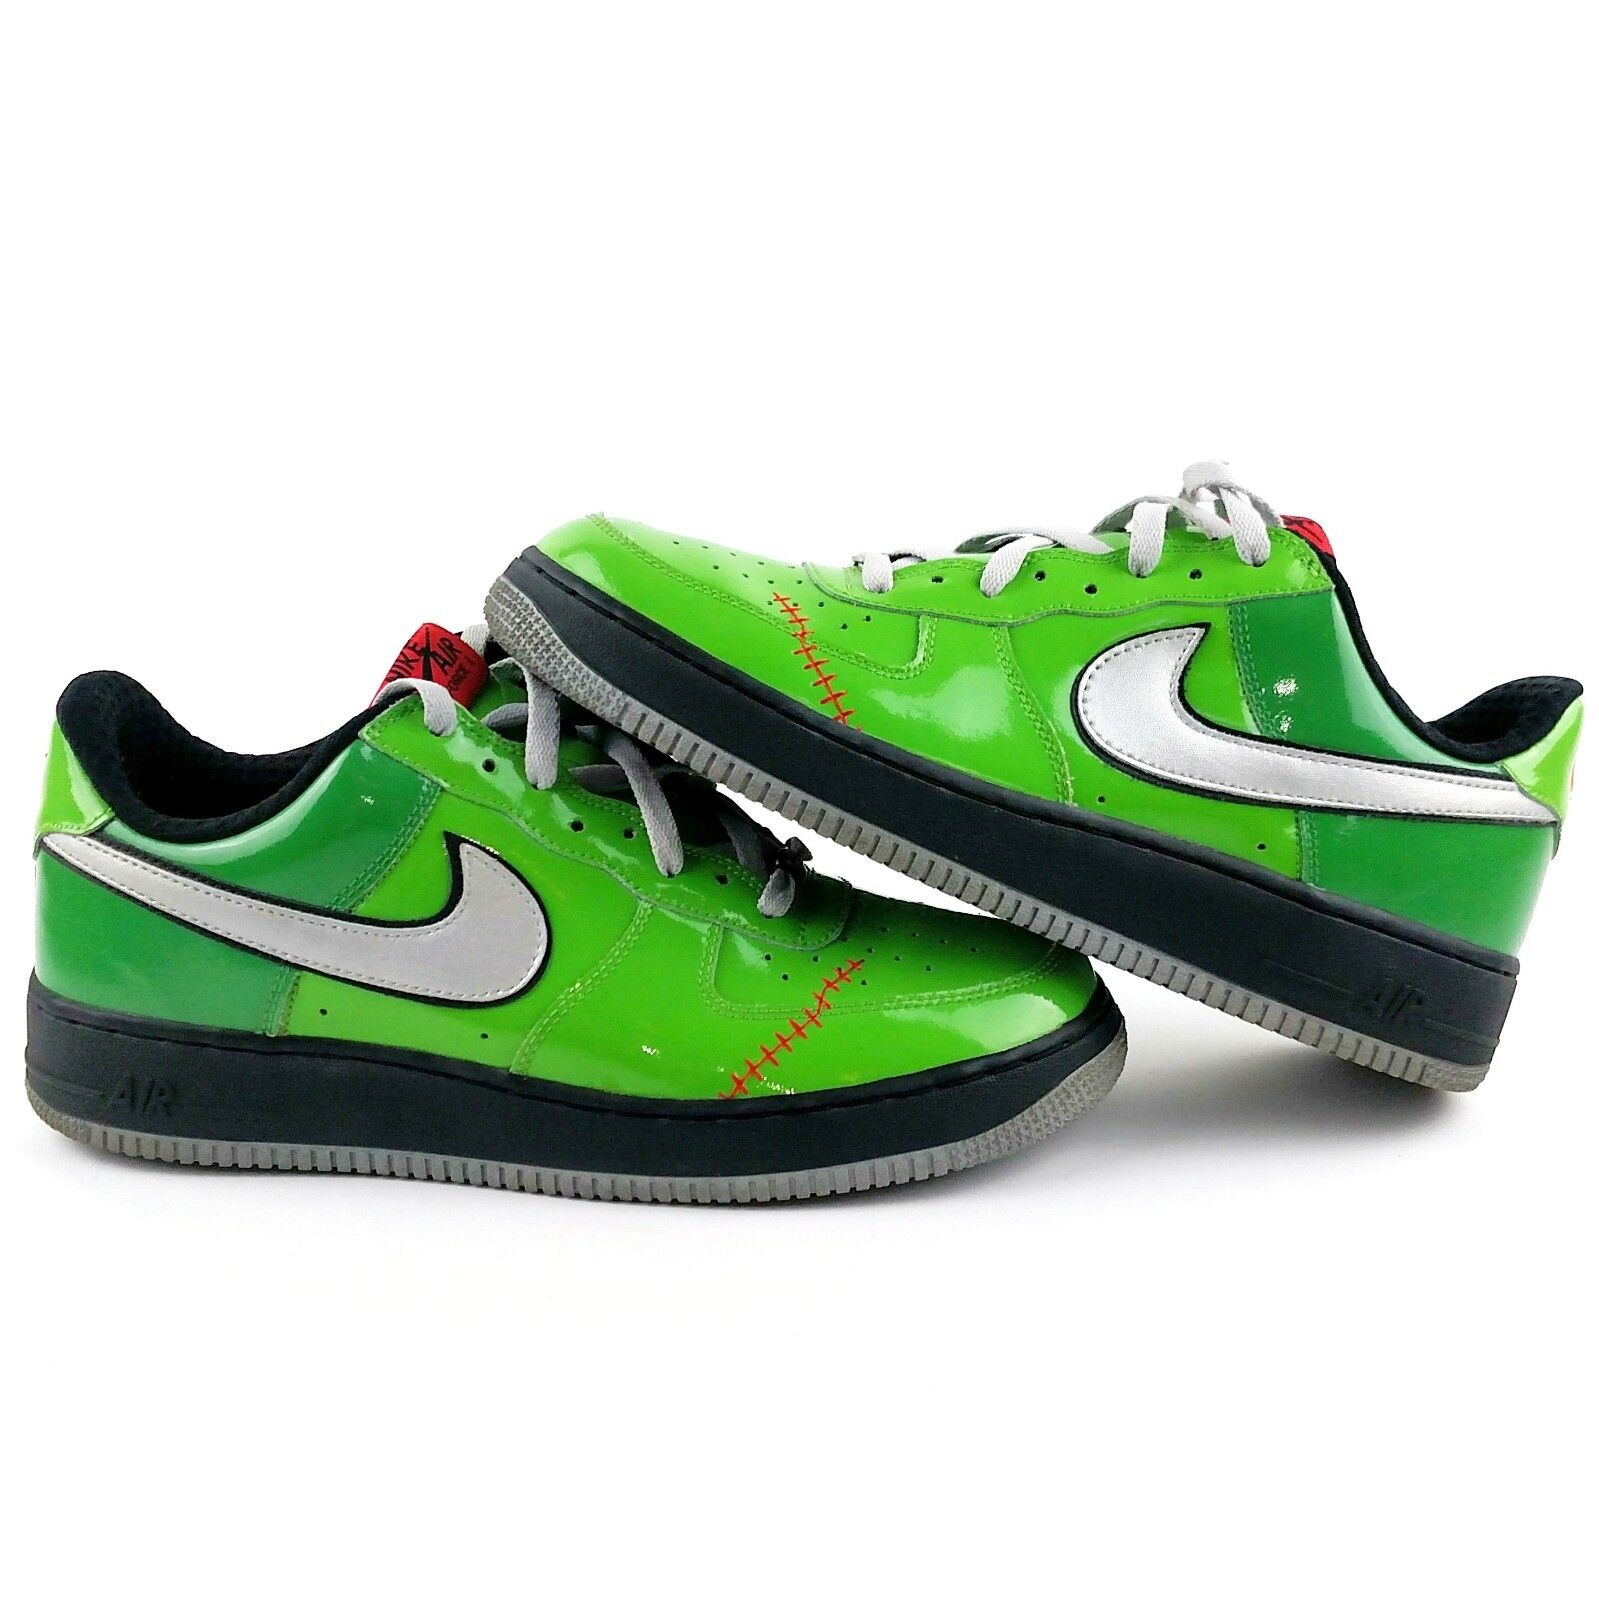 Nike Air Force 1 Low Premium AF1 313641-301 Frankenstein Leather Men's Size 11